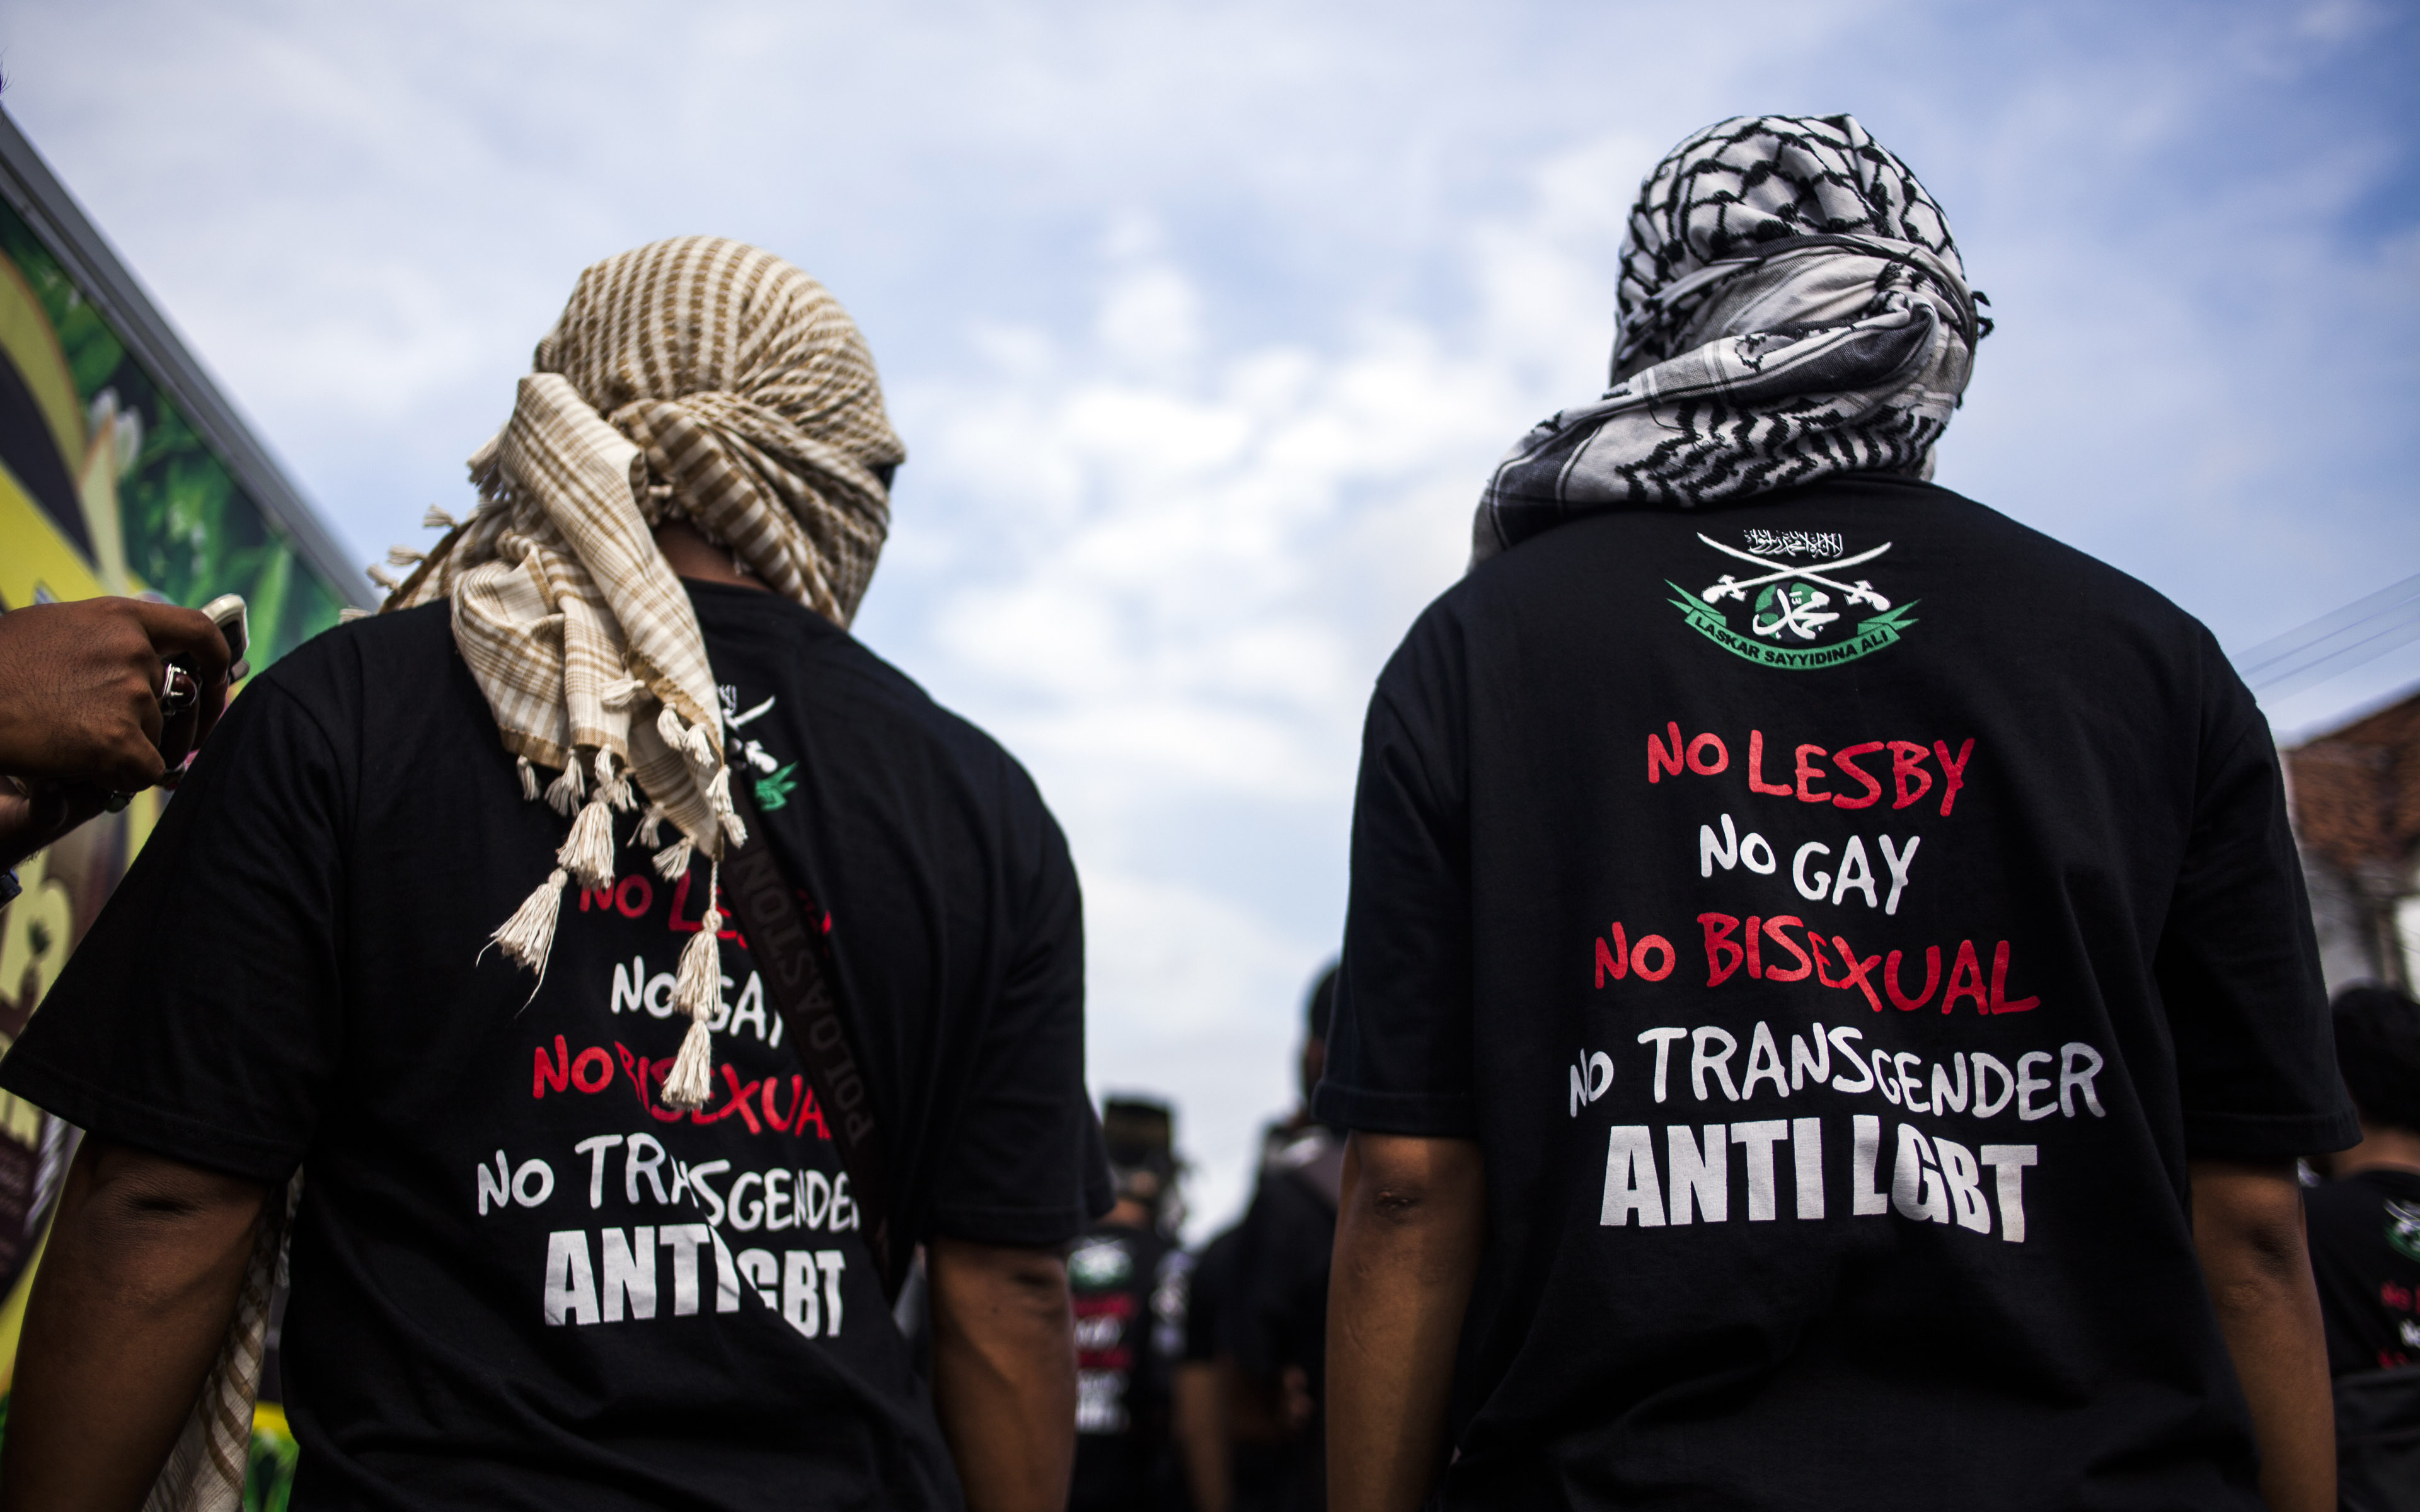 In this photo taken on February 23, 2016 shows anti-LGBT Muslim group marching to blockade pro-LGBT protesters in Yogyakarta, in Java island.